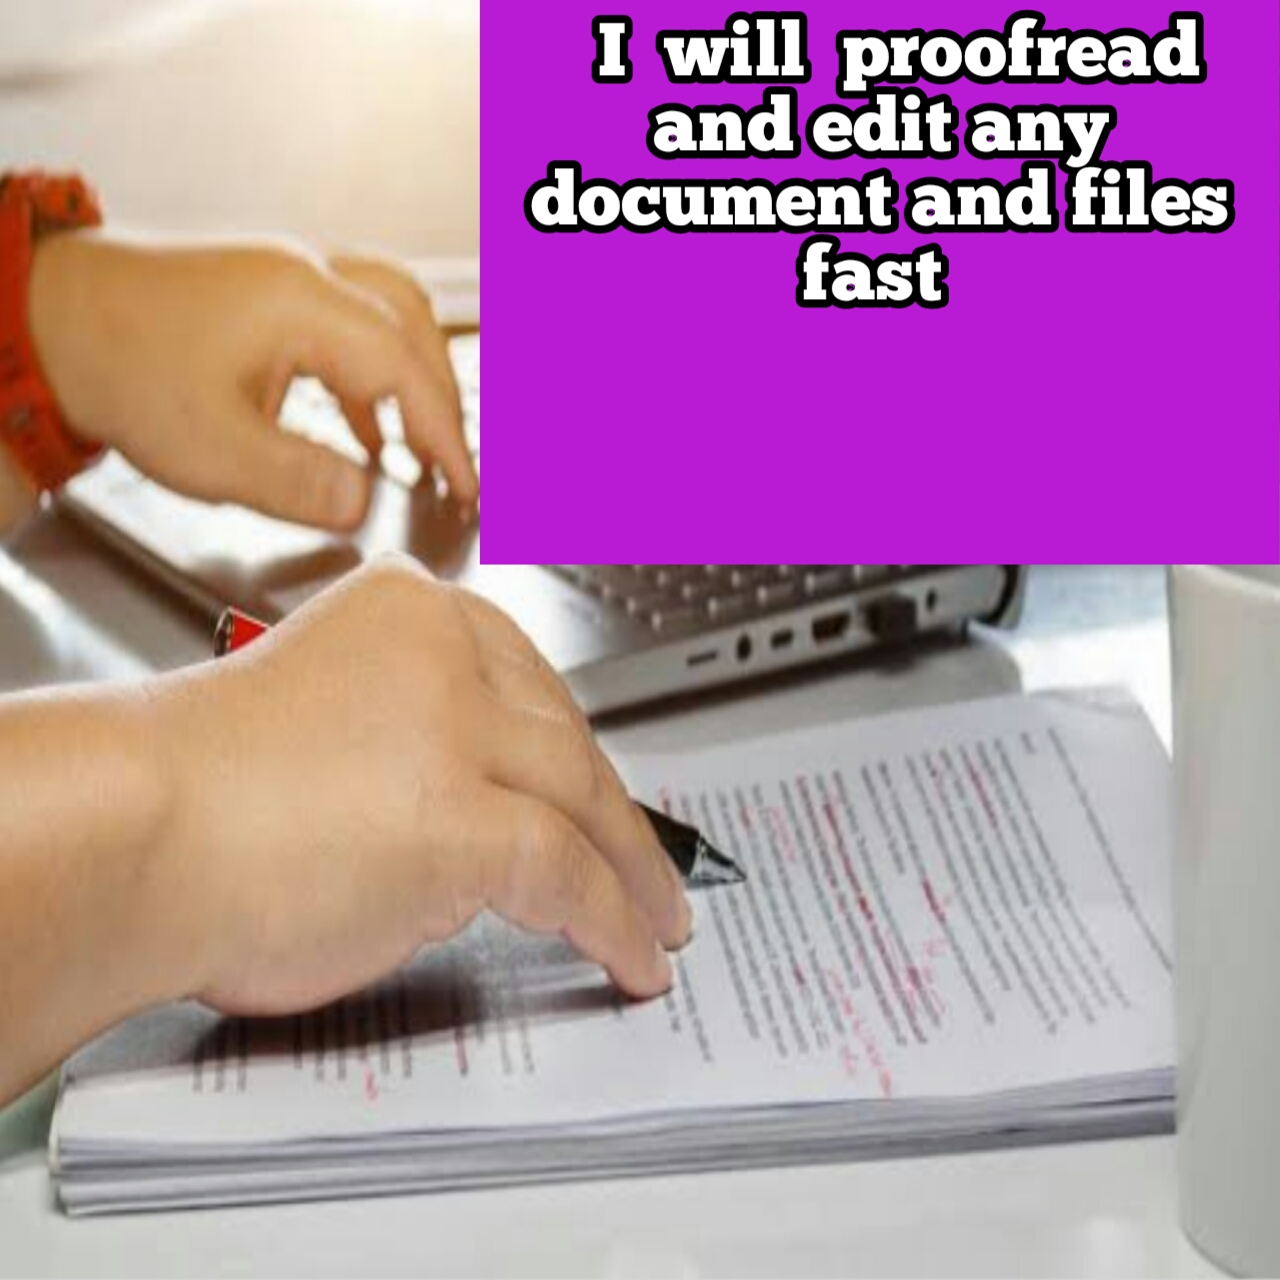 I will proofread and edit any documents and files fast